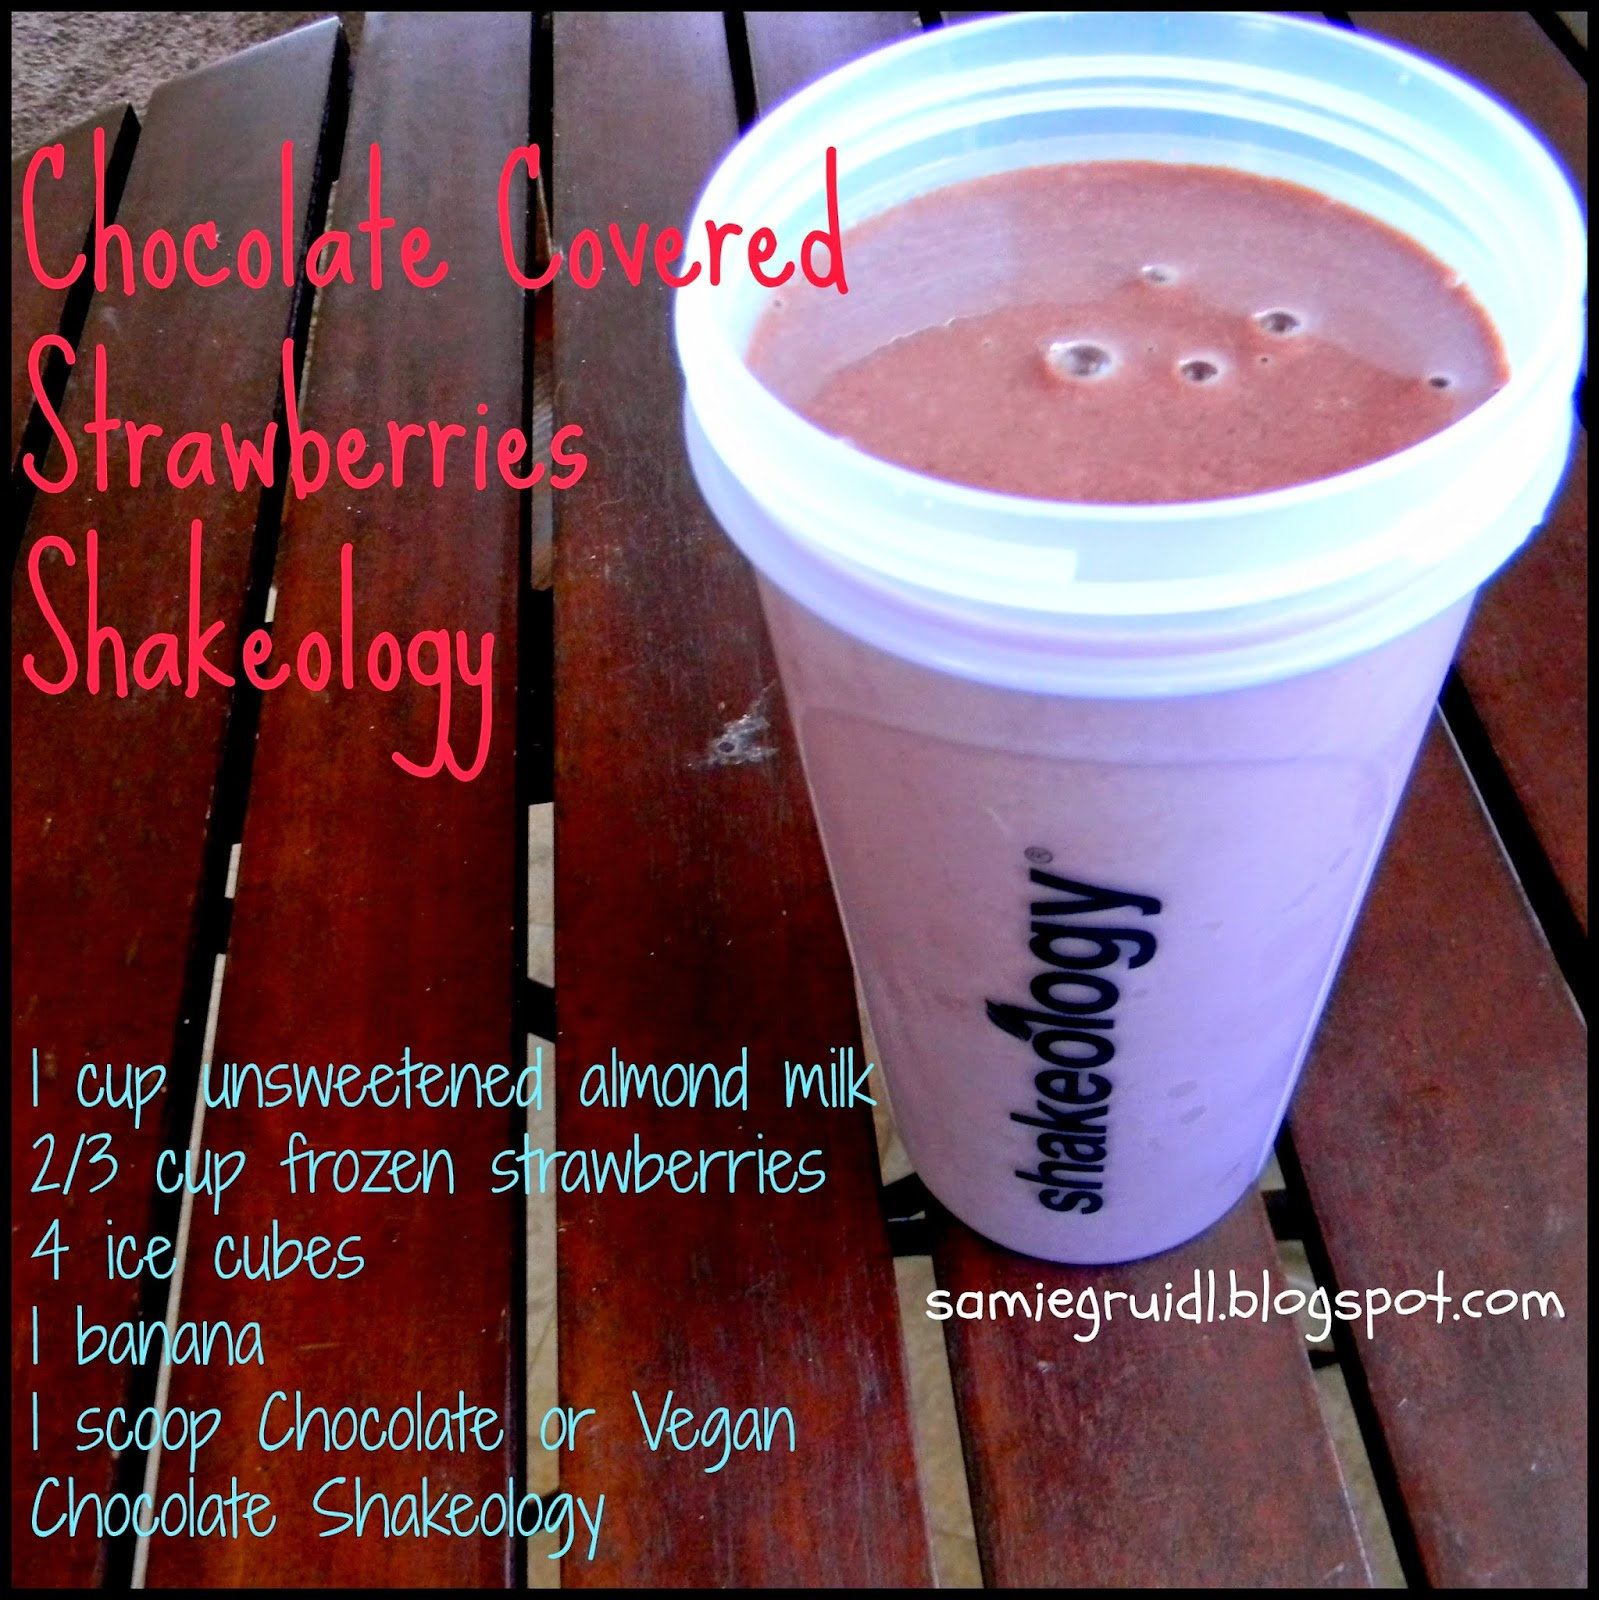 Samie Gruidl: Chocolate Covered Strawberries Shakeology